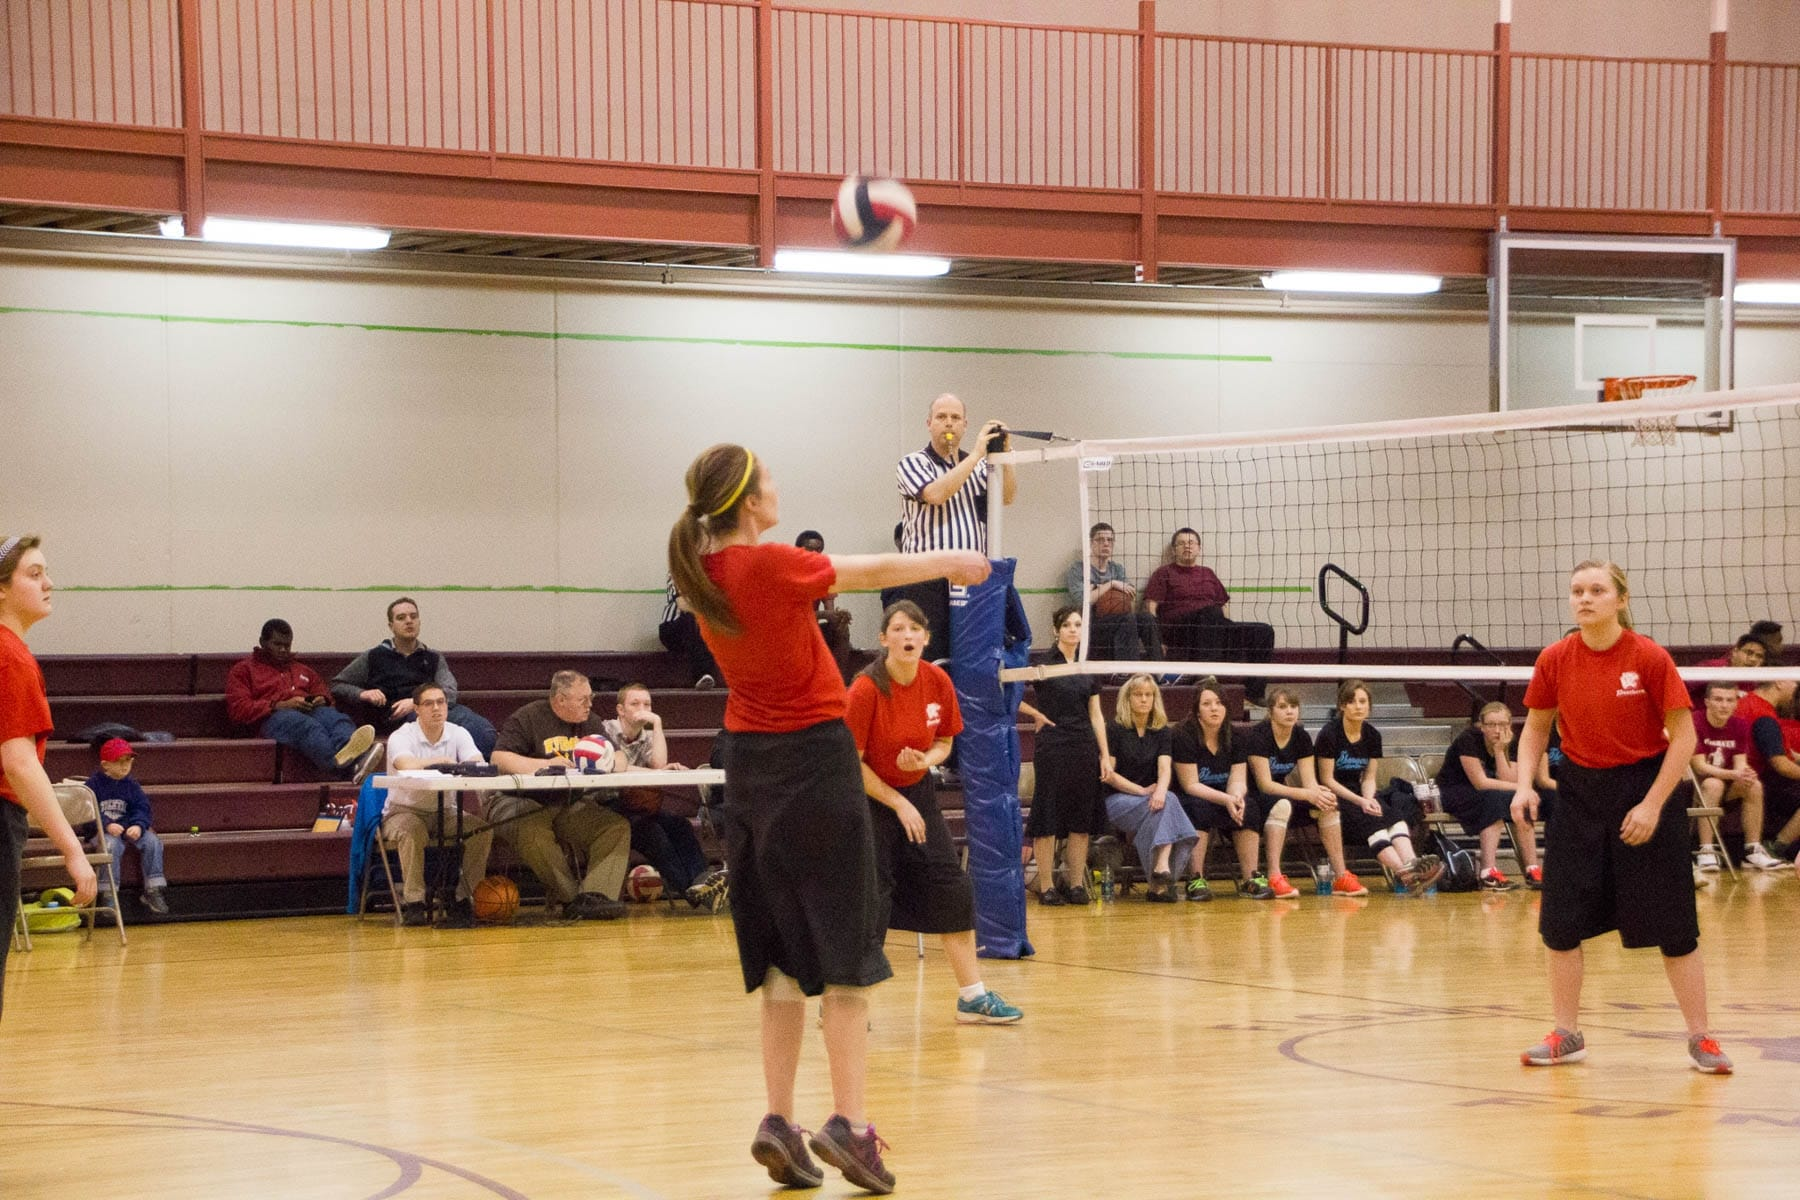 Fairhaven Baptist Academy Volleyball Basketball Tournament 2016 (13 of 40)